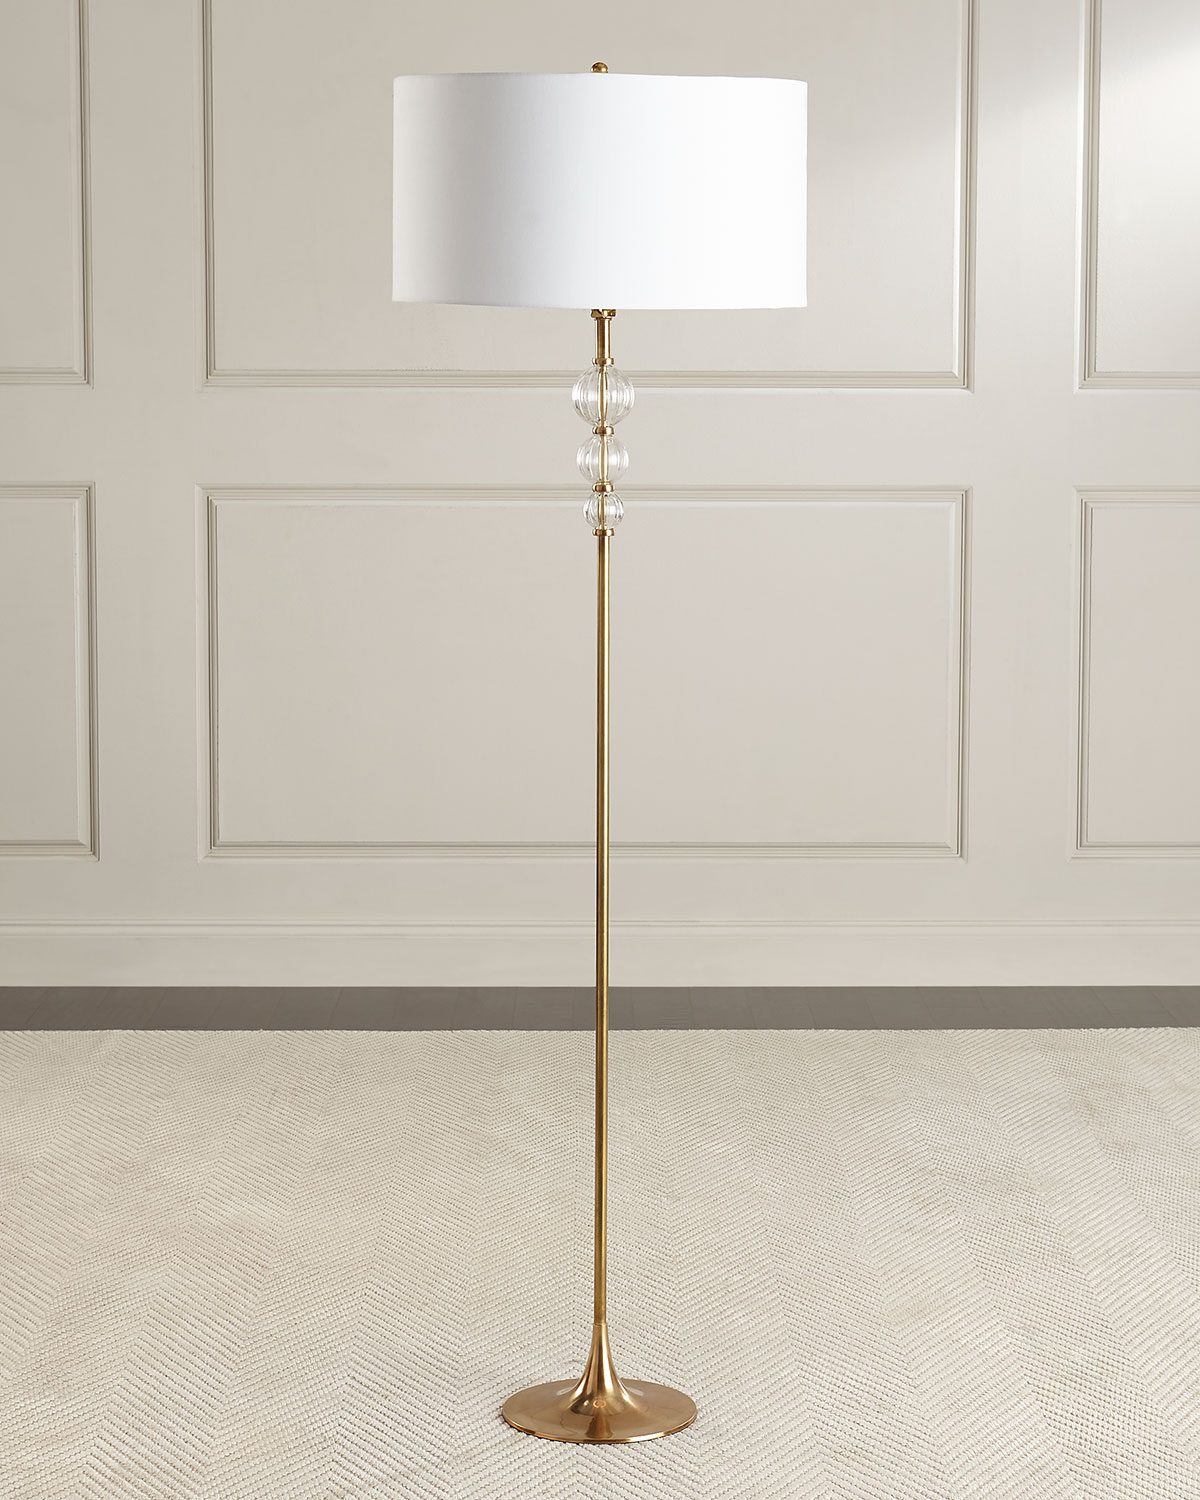 TripleBall Floor Lamp